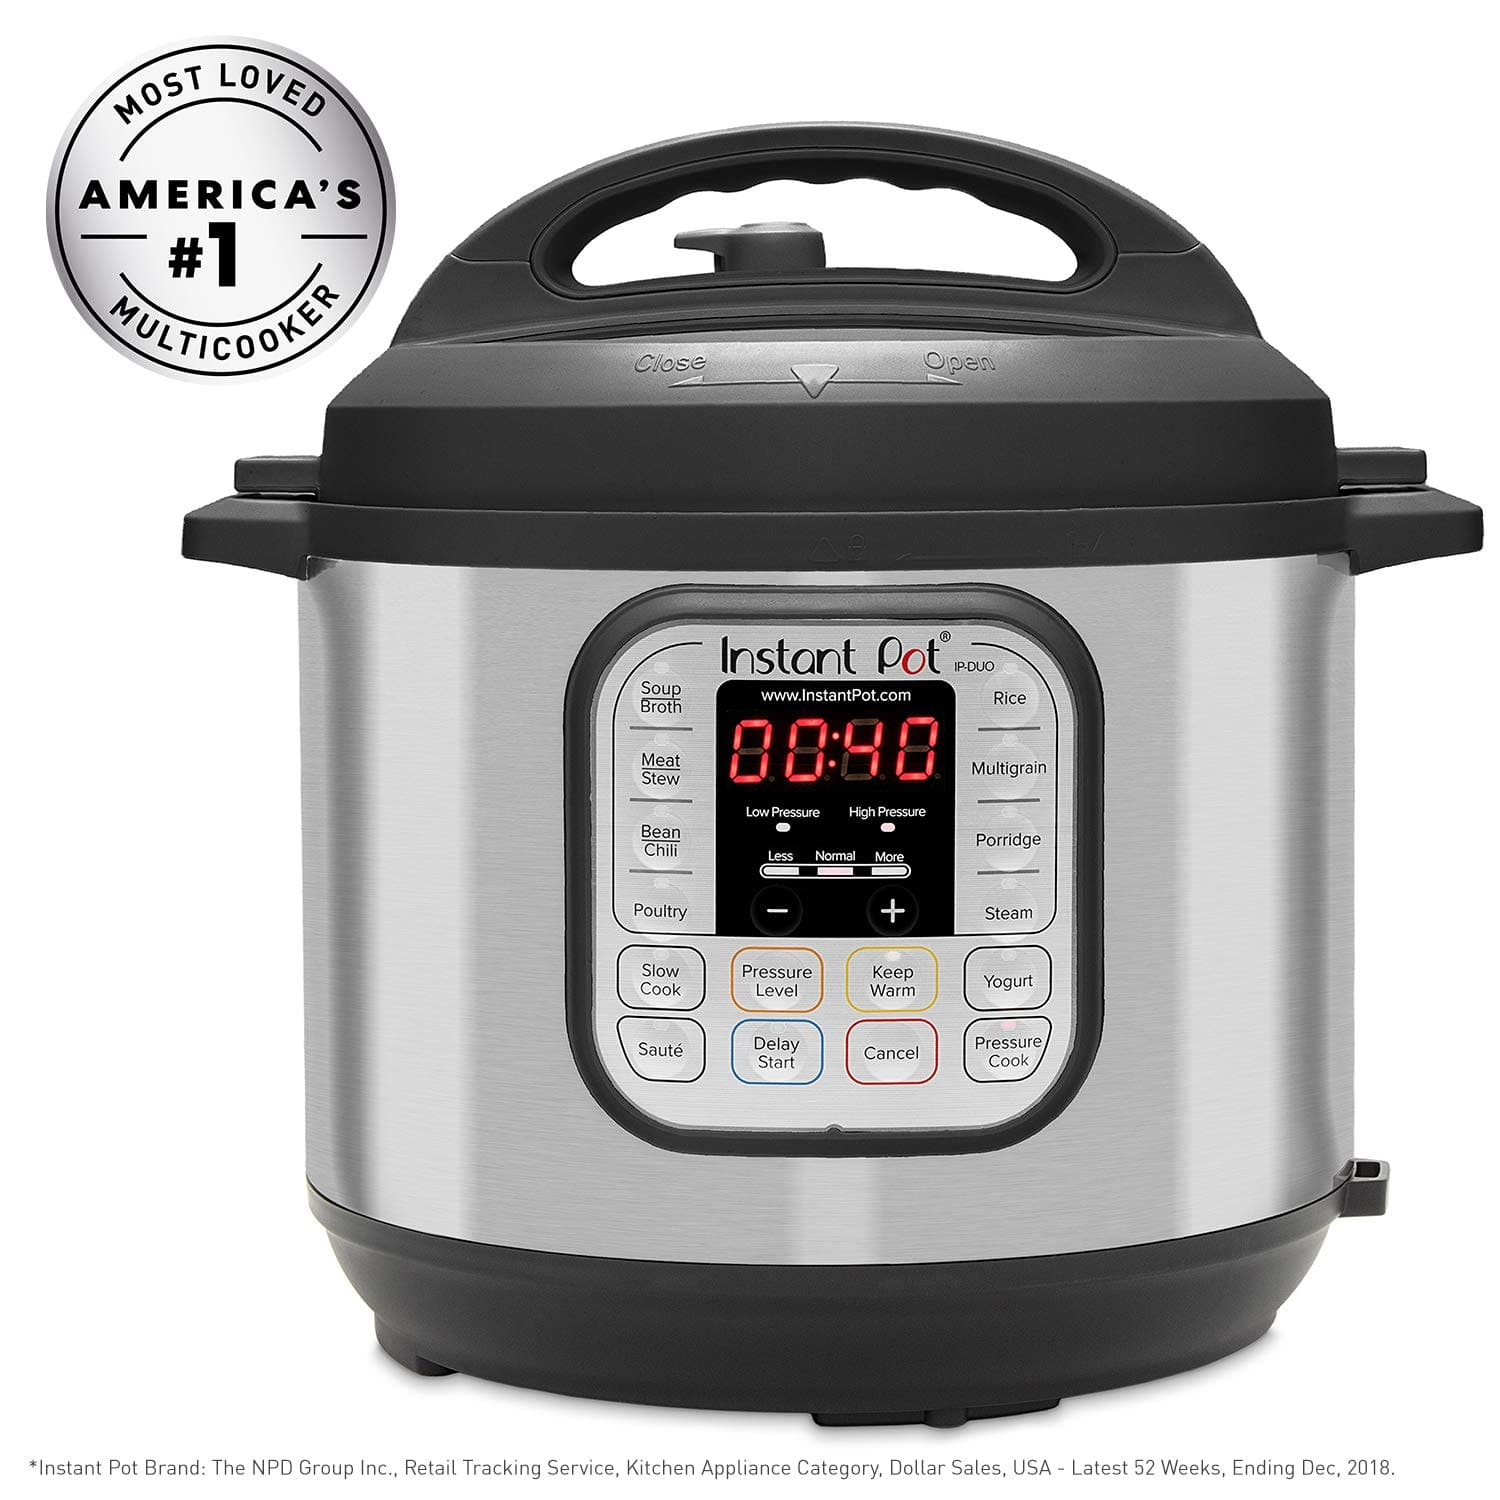 Instant Pot Duo 80 7-in-1 Electric Pressure Cooker 8 QT - $65 Amazon Lightning Deal